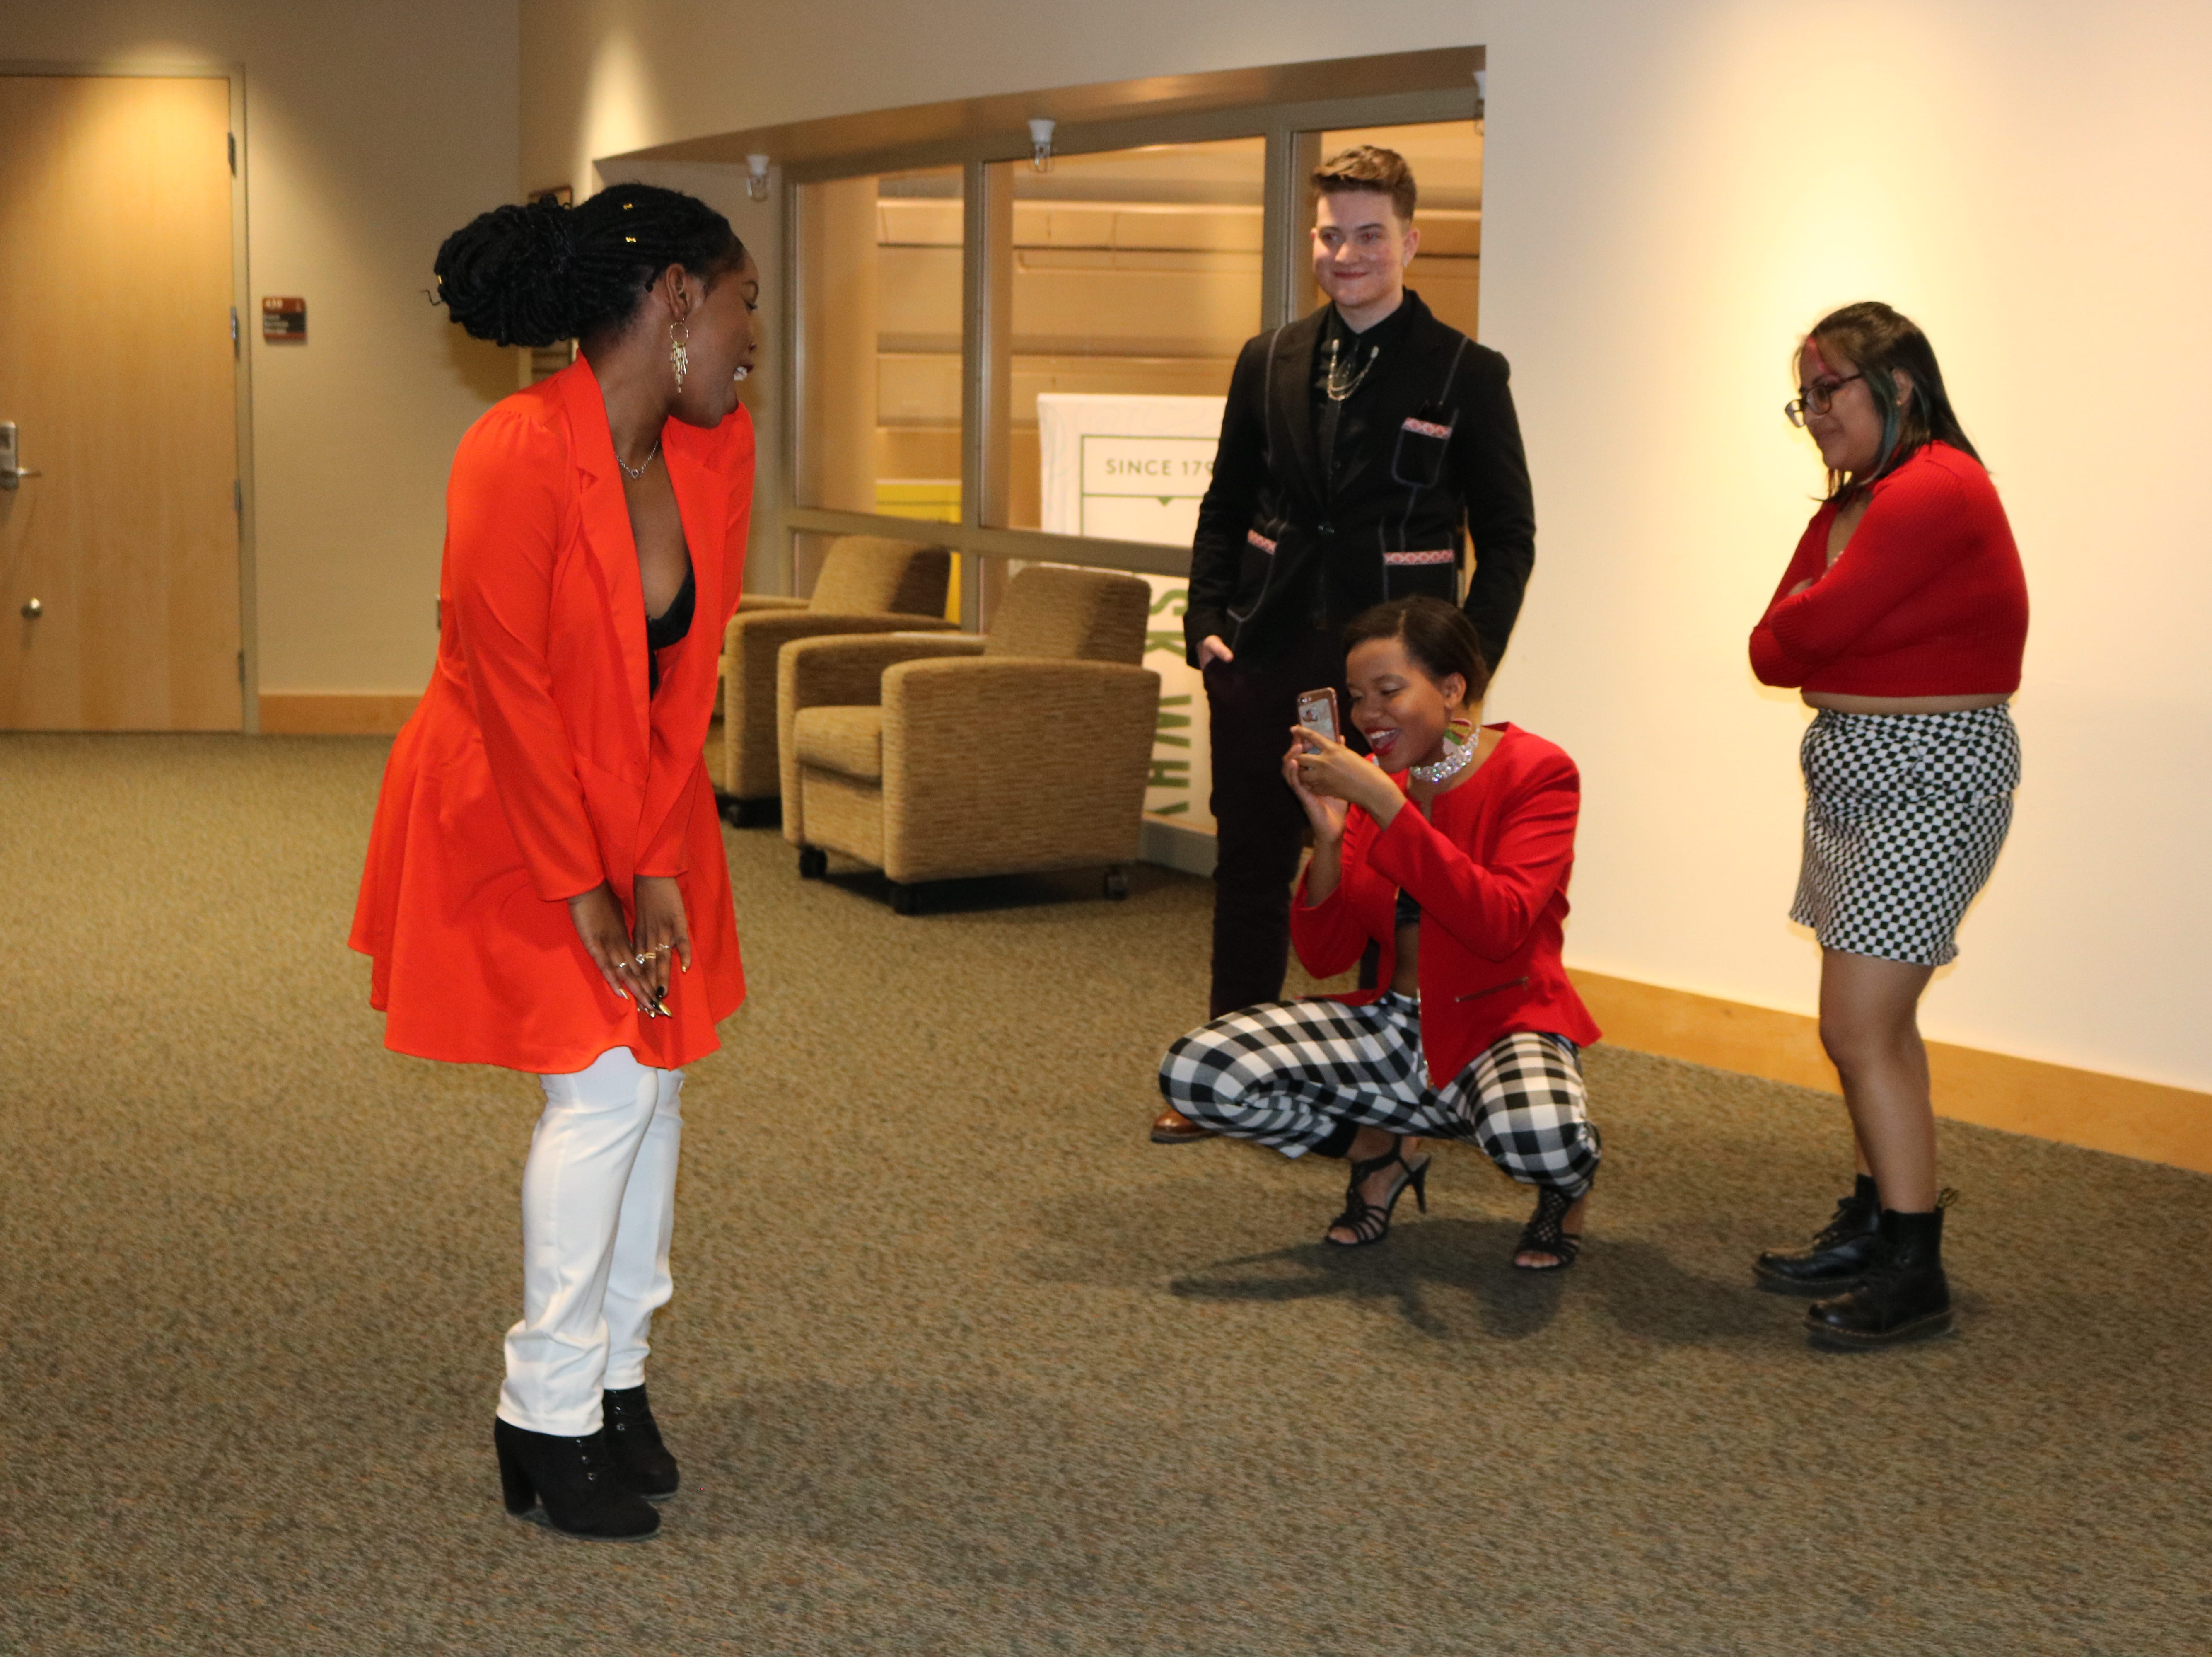 Champlain College students pose during intermission at UVM's annual fashion show on Sat., Feb. 23, 2019.